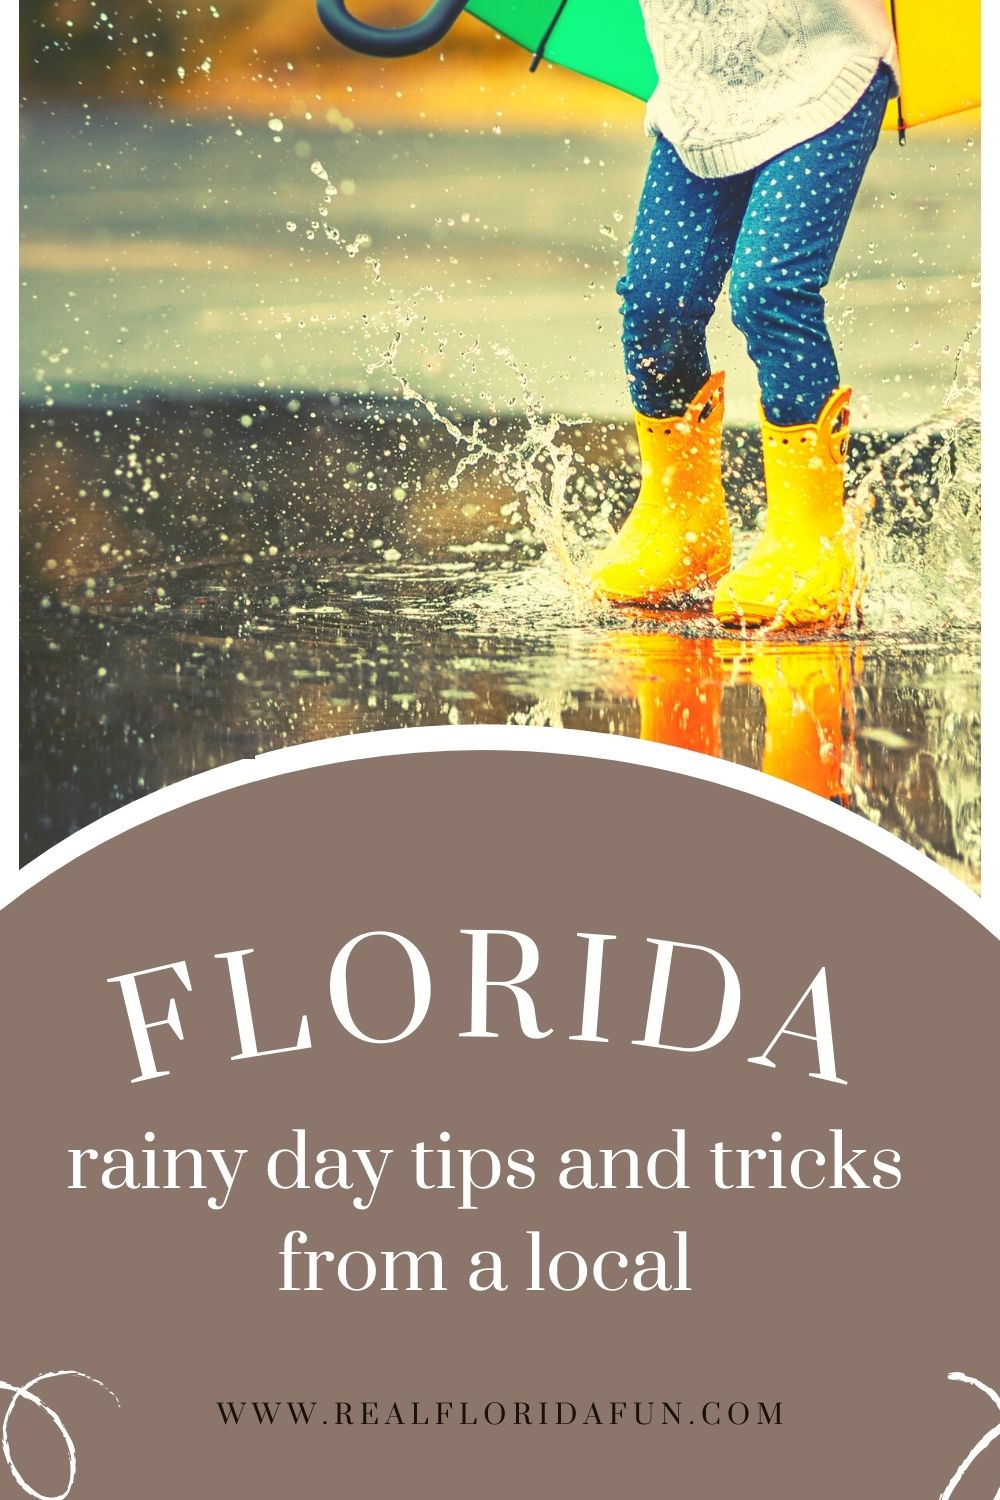 Florida Rainy Day Tips and tricks to make the most of your Florida trip in the rainy season